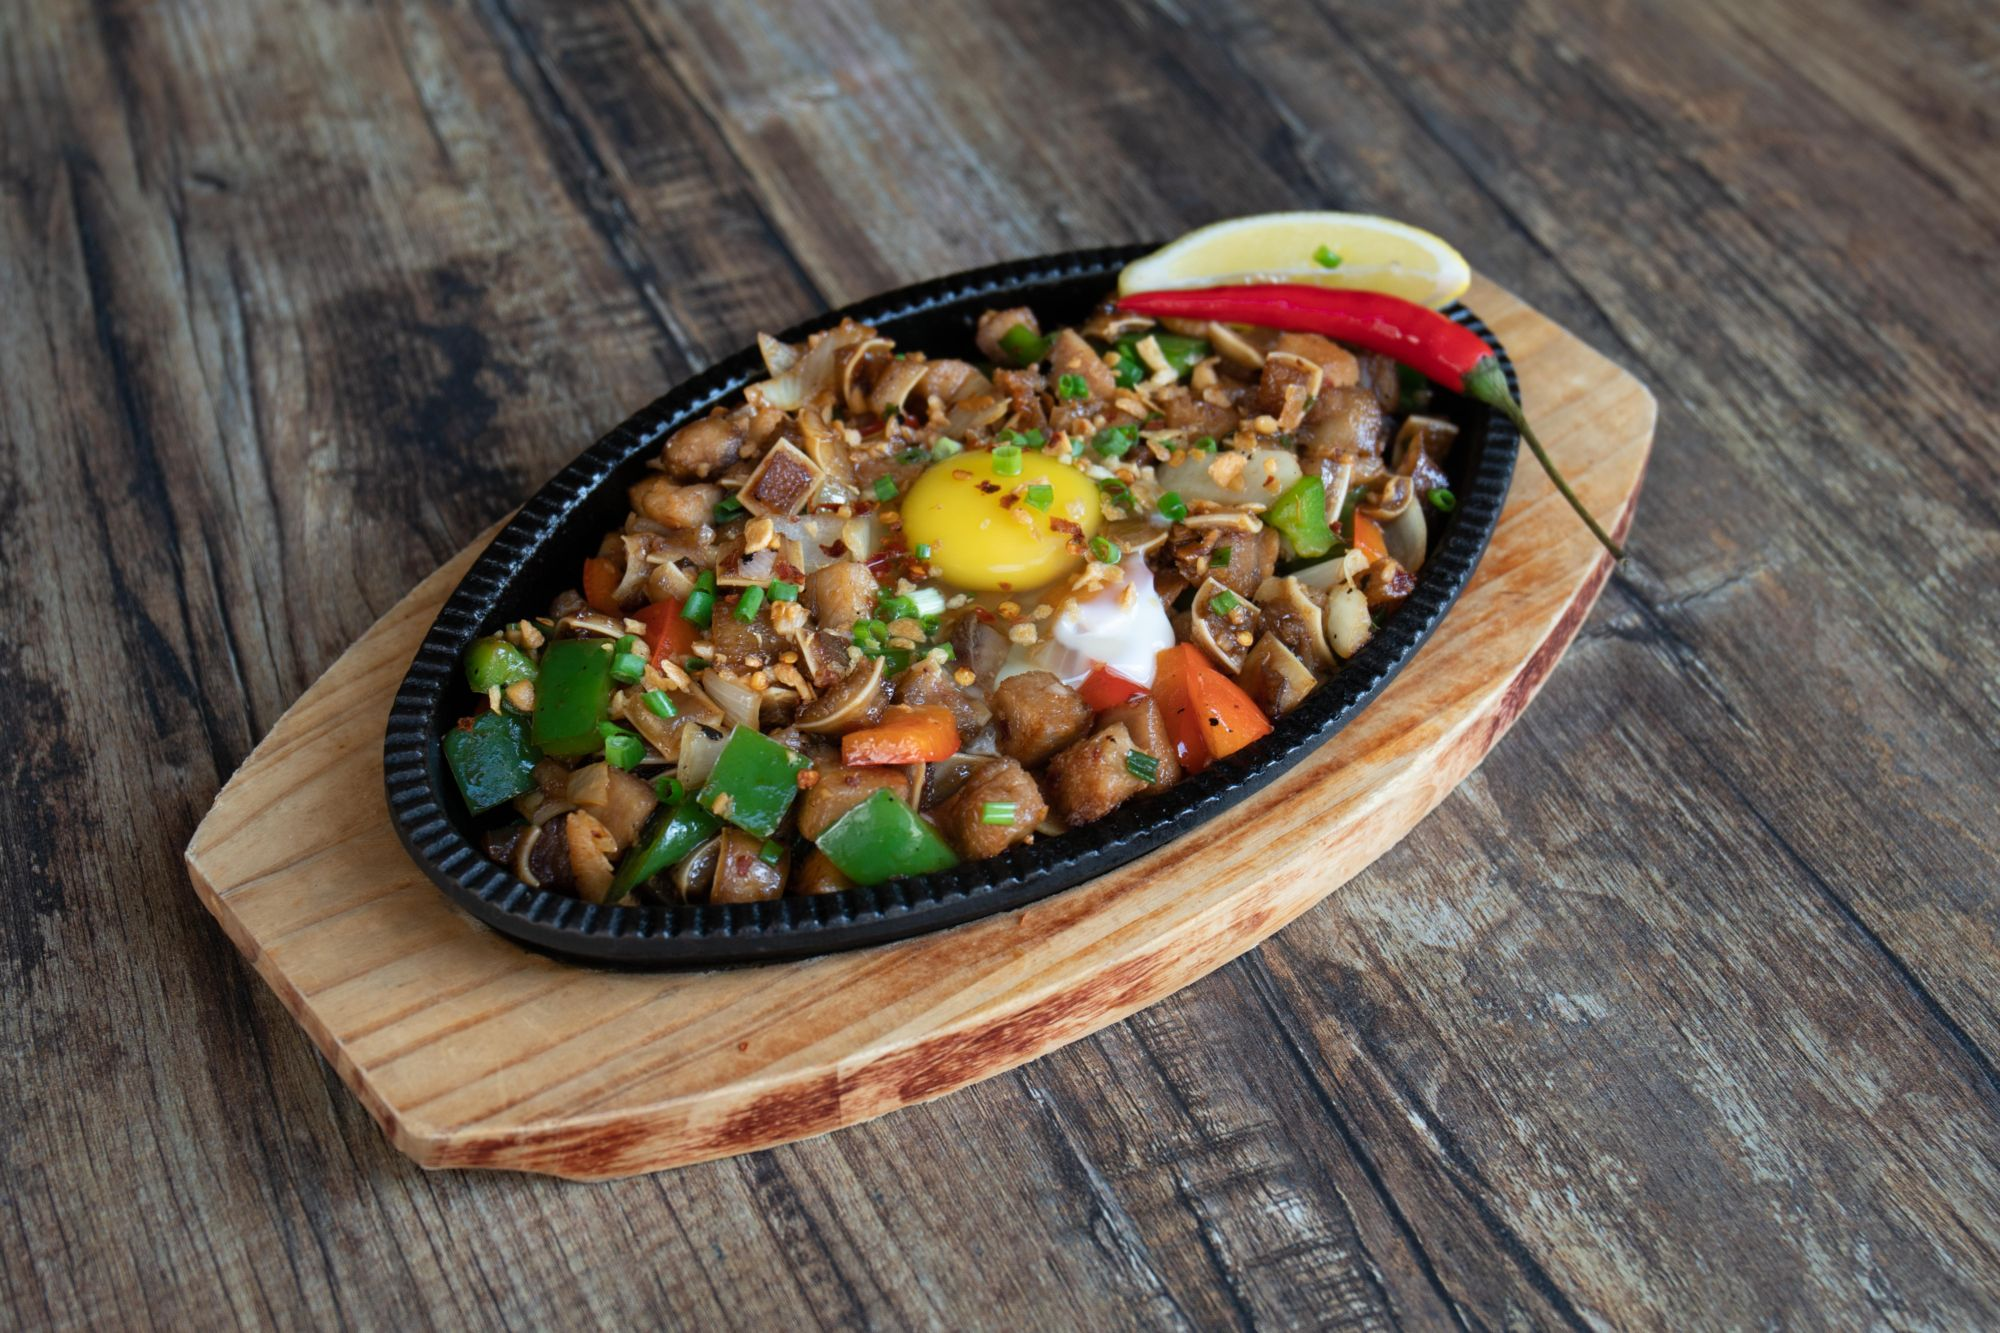 the roadhouse macau spicy suzuki sisig filipino food macau lifestyle